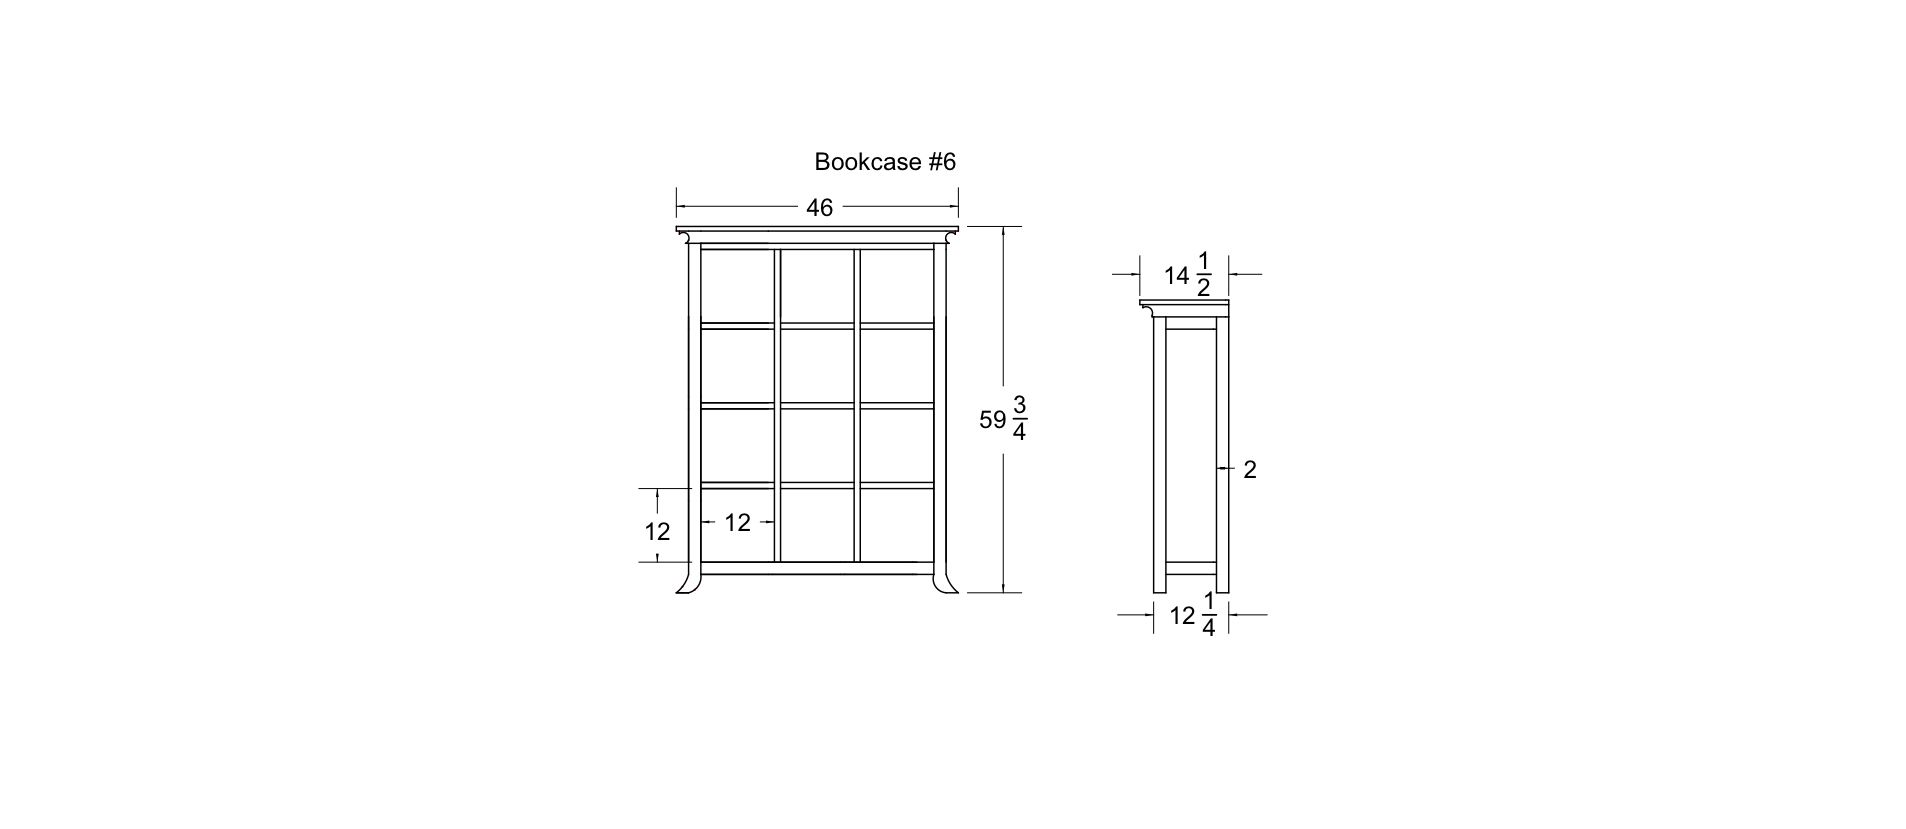 bookcase #6.png